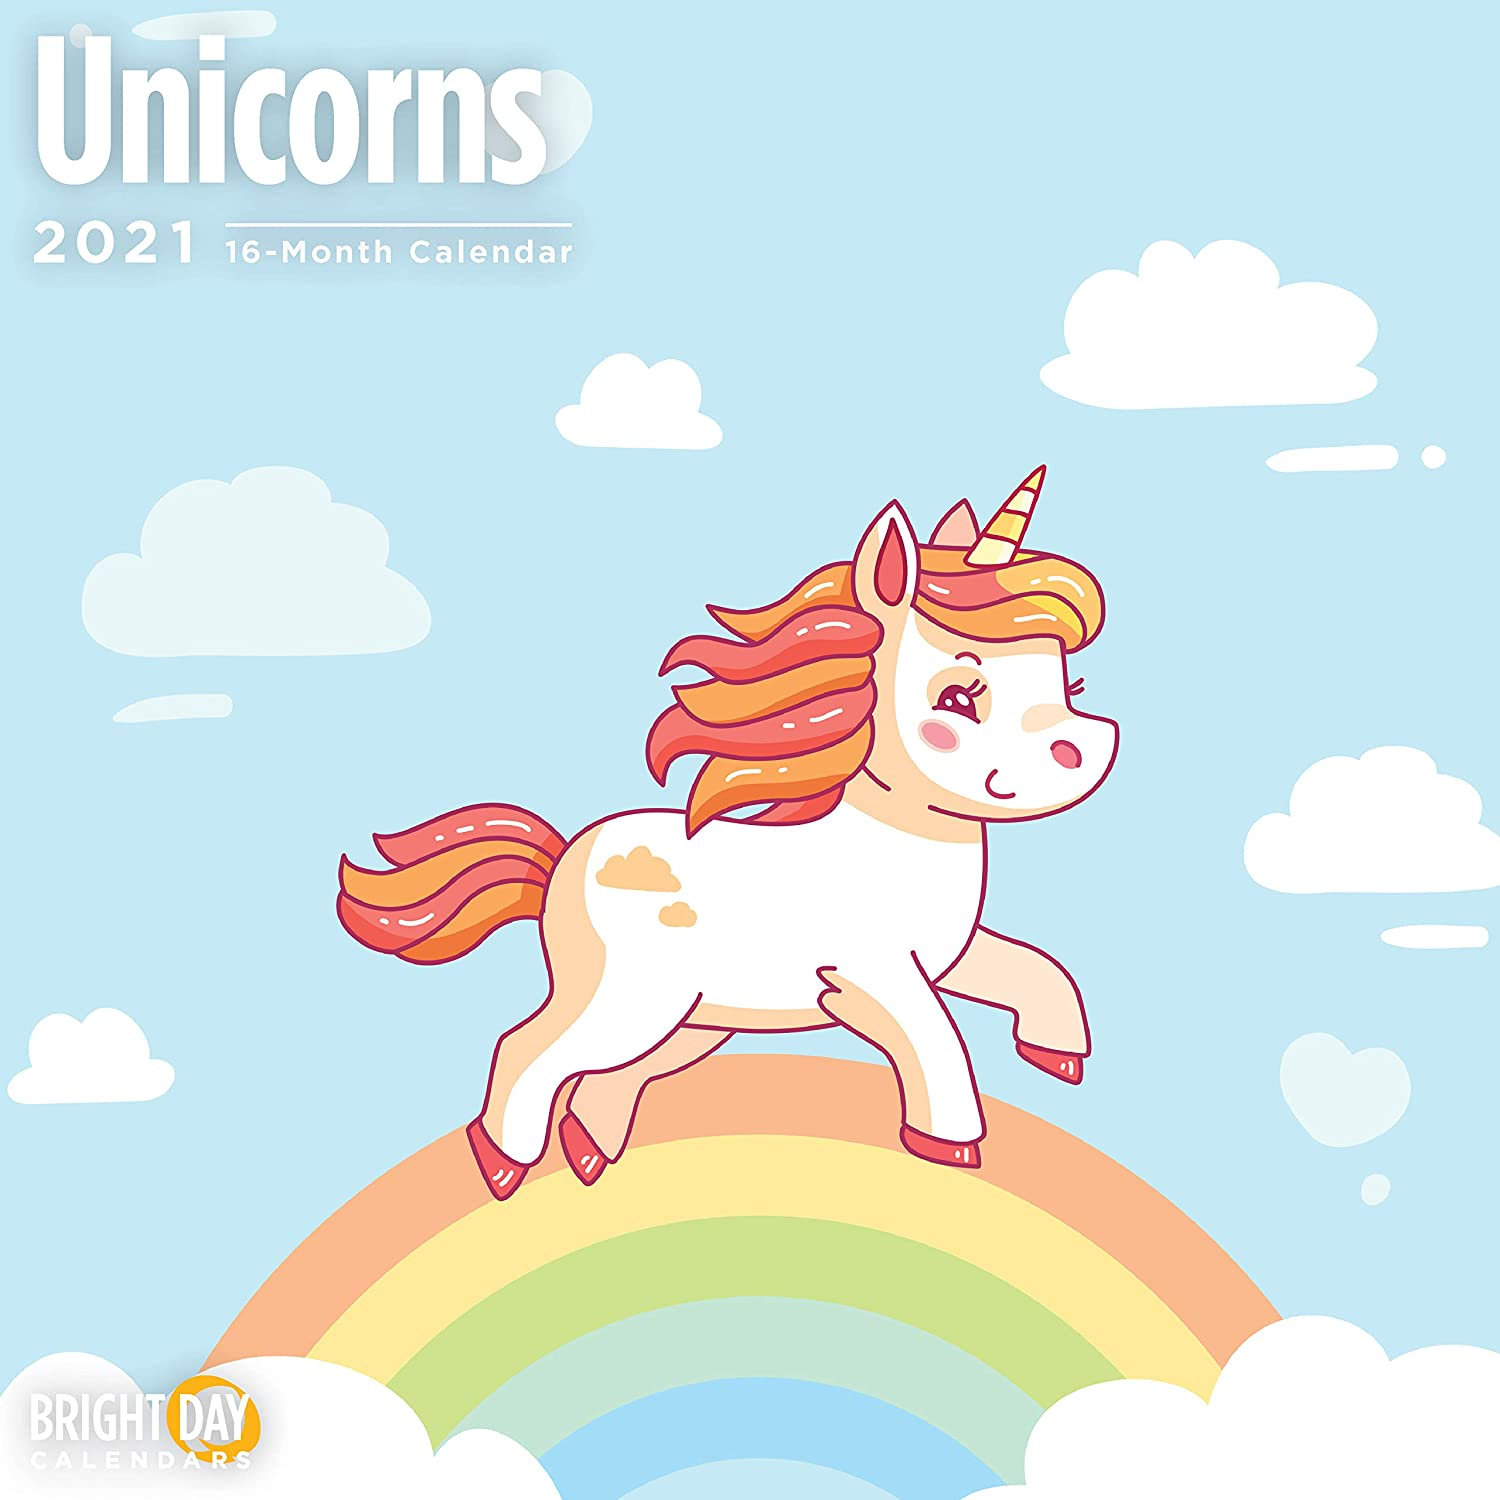 2021 Unicorns Wall Calendar by Bright Day, 12 x 12 Inch, Magical Imagination for Kids and Family